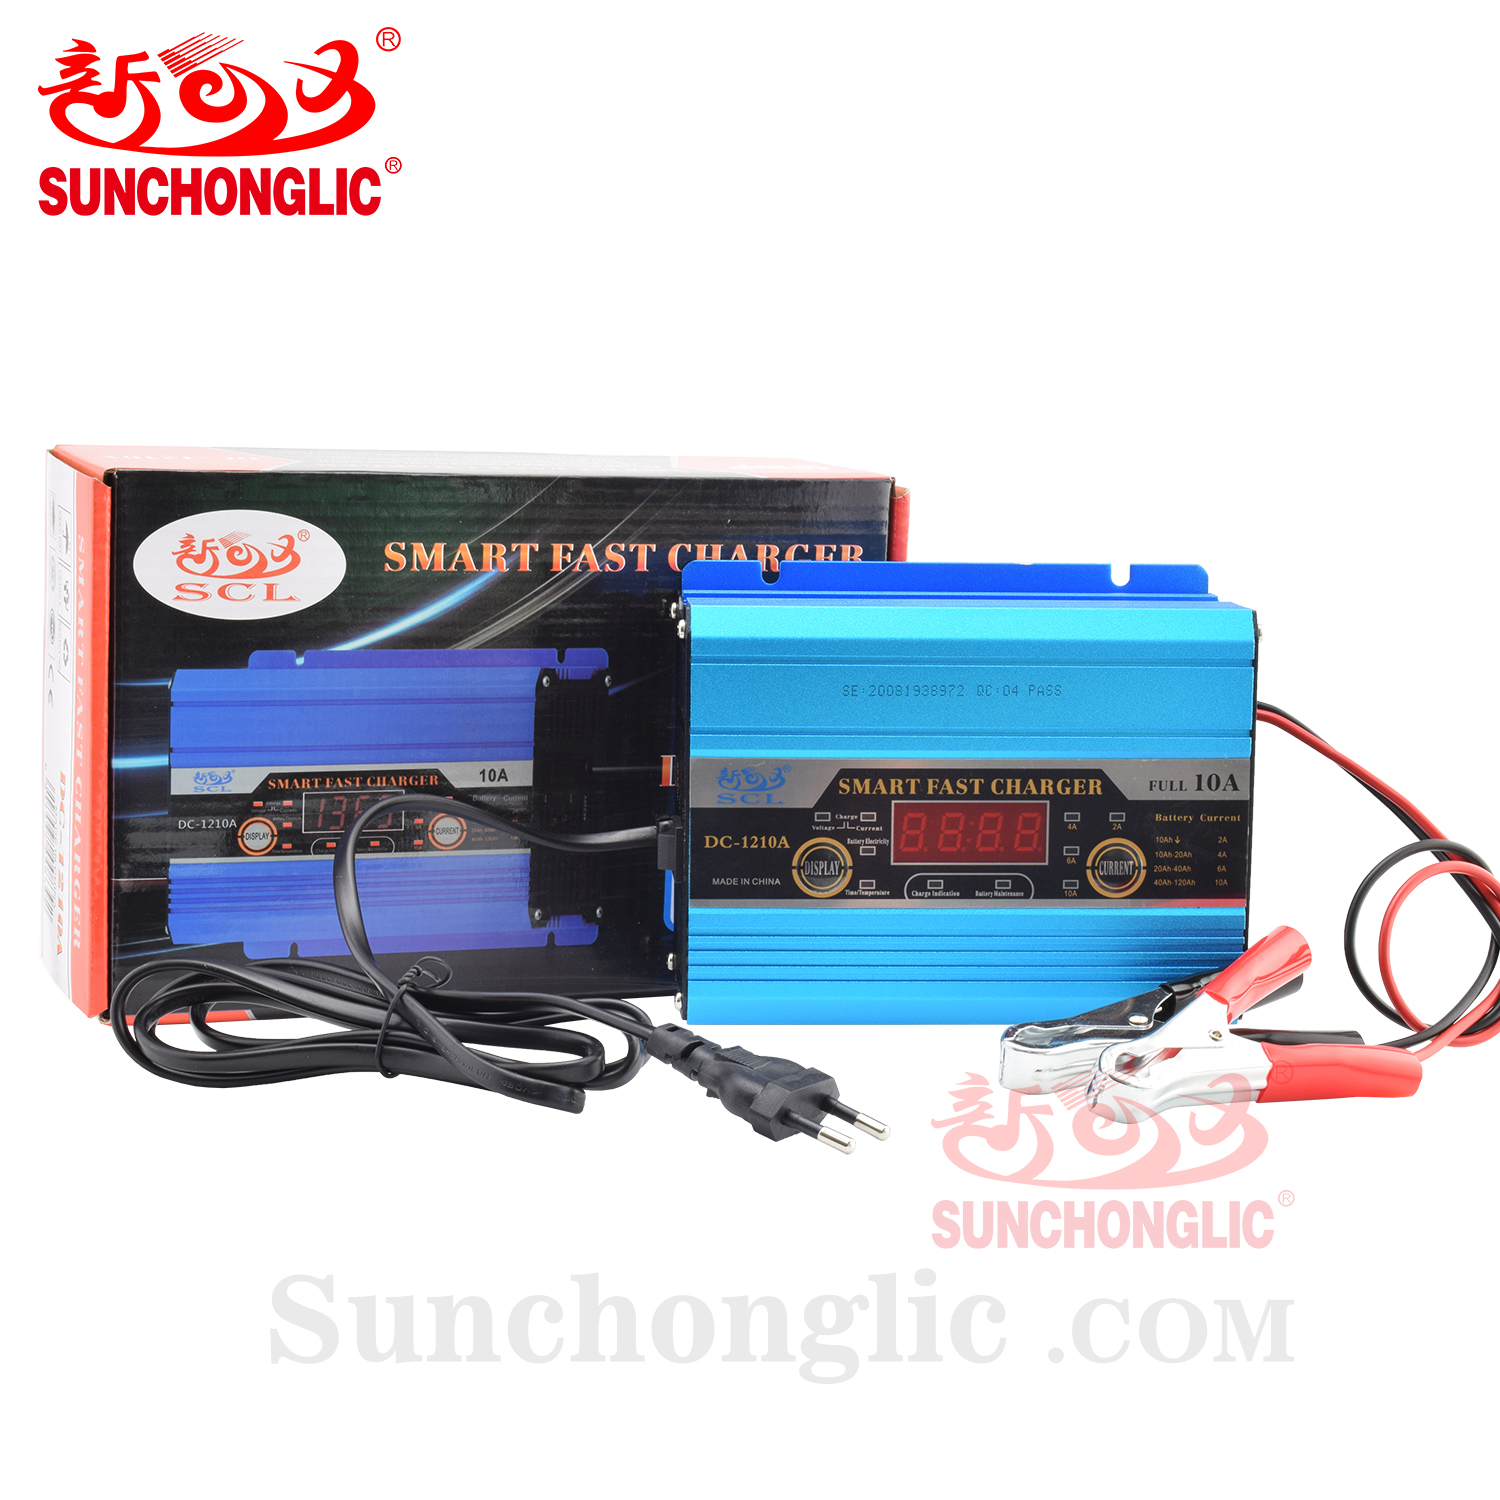 Sunchonglic 12v 10A three phase automatic lead acid car battery charger